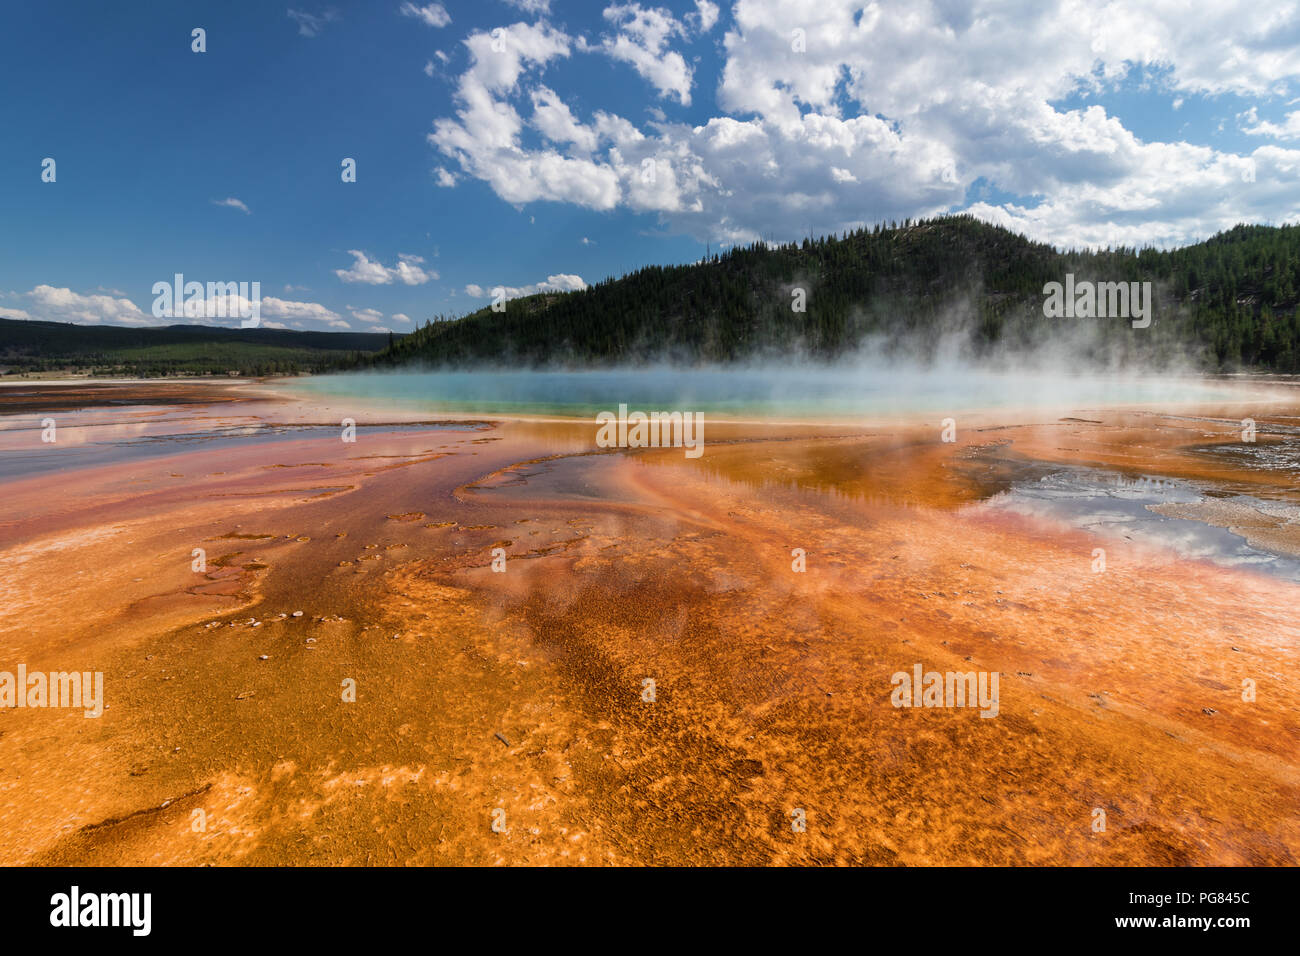 Grand Prismatic Spring - Yellowstone Park. Landscape on a Summer sunny day with clouds. Contrast of colors - Orange, Green Blue Stock Photo